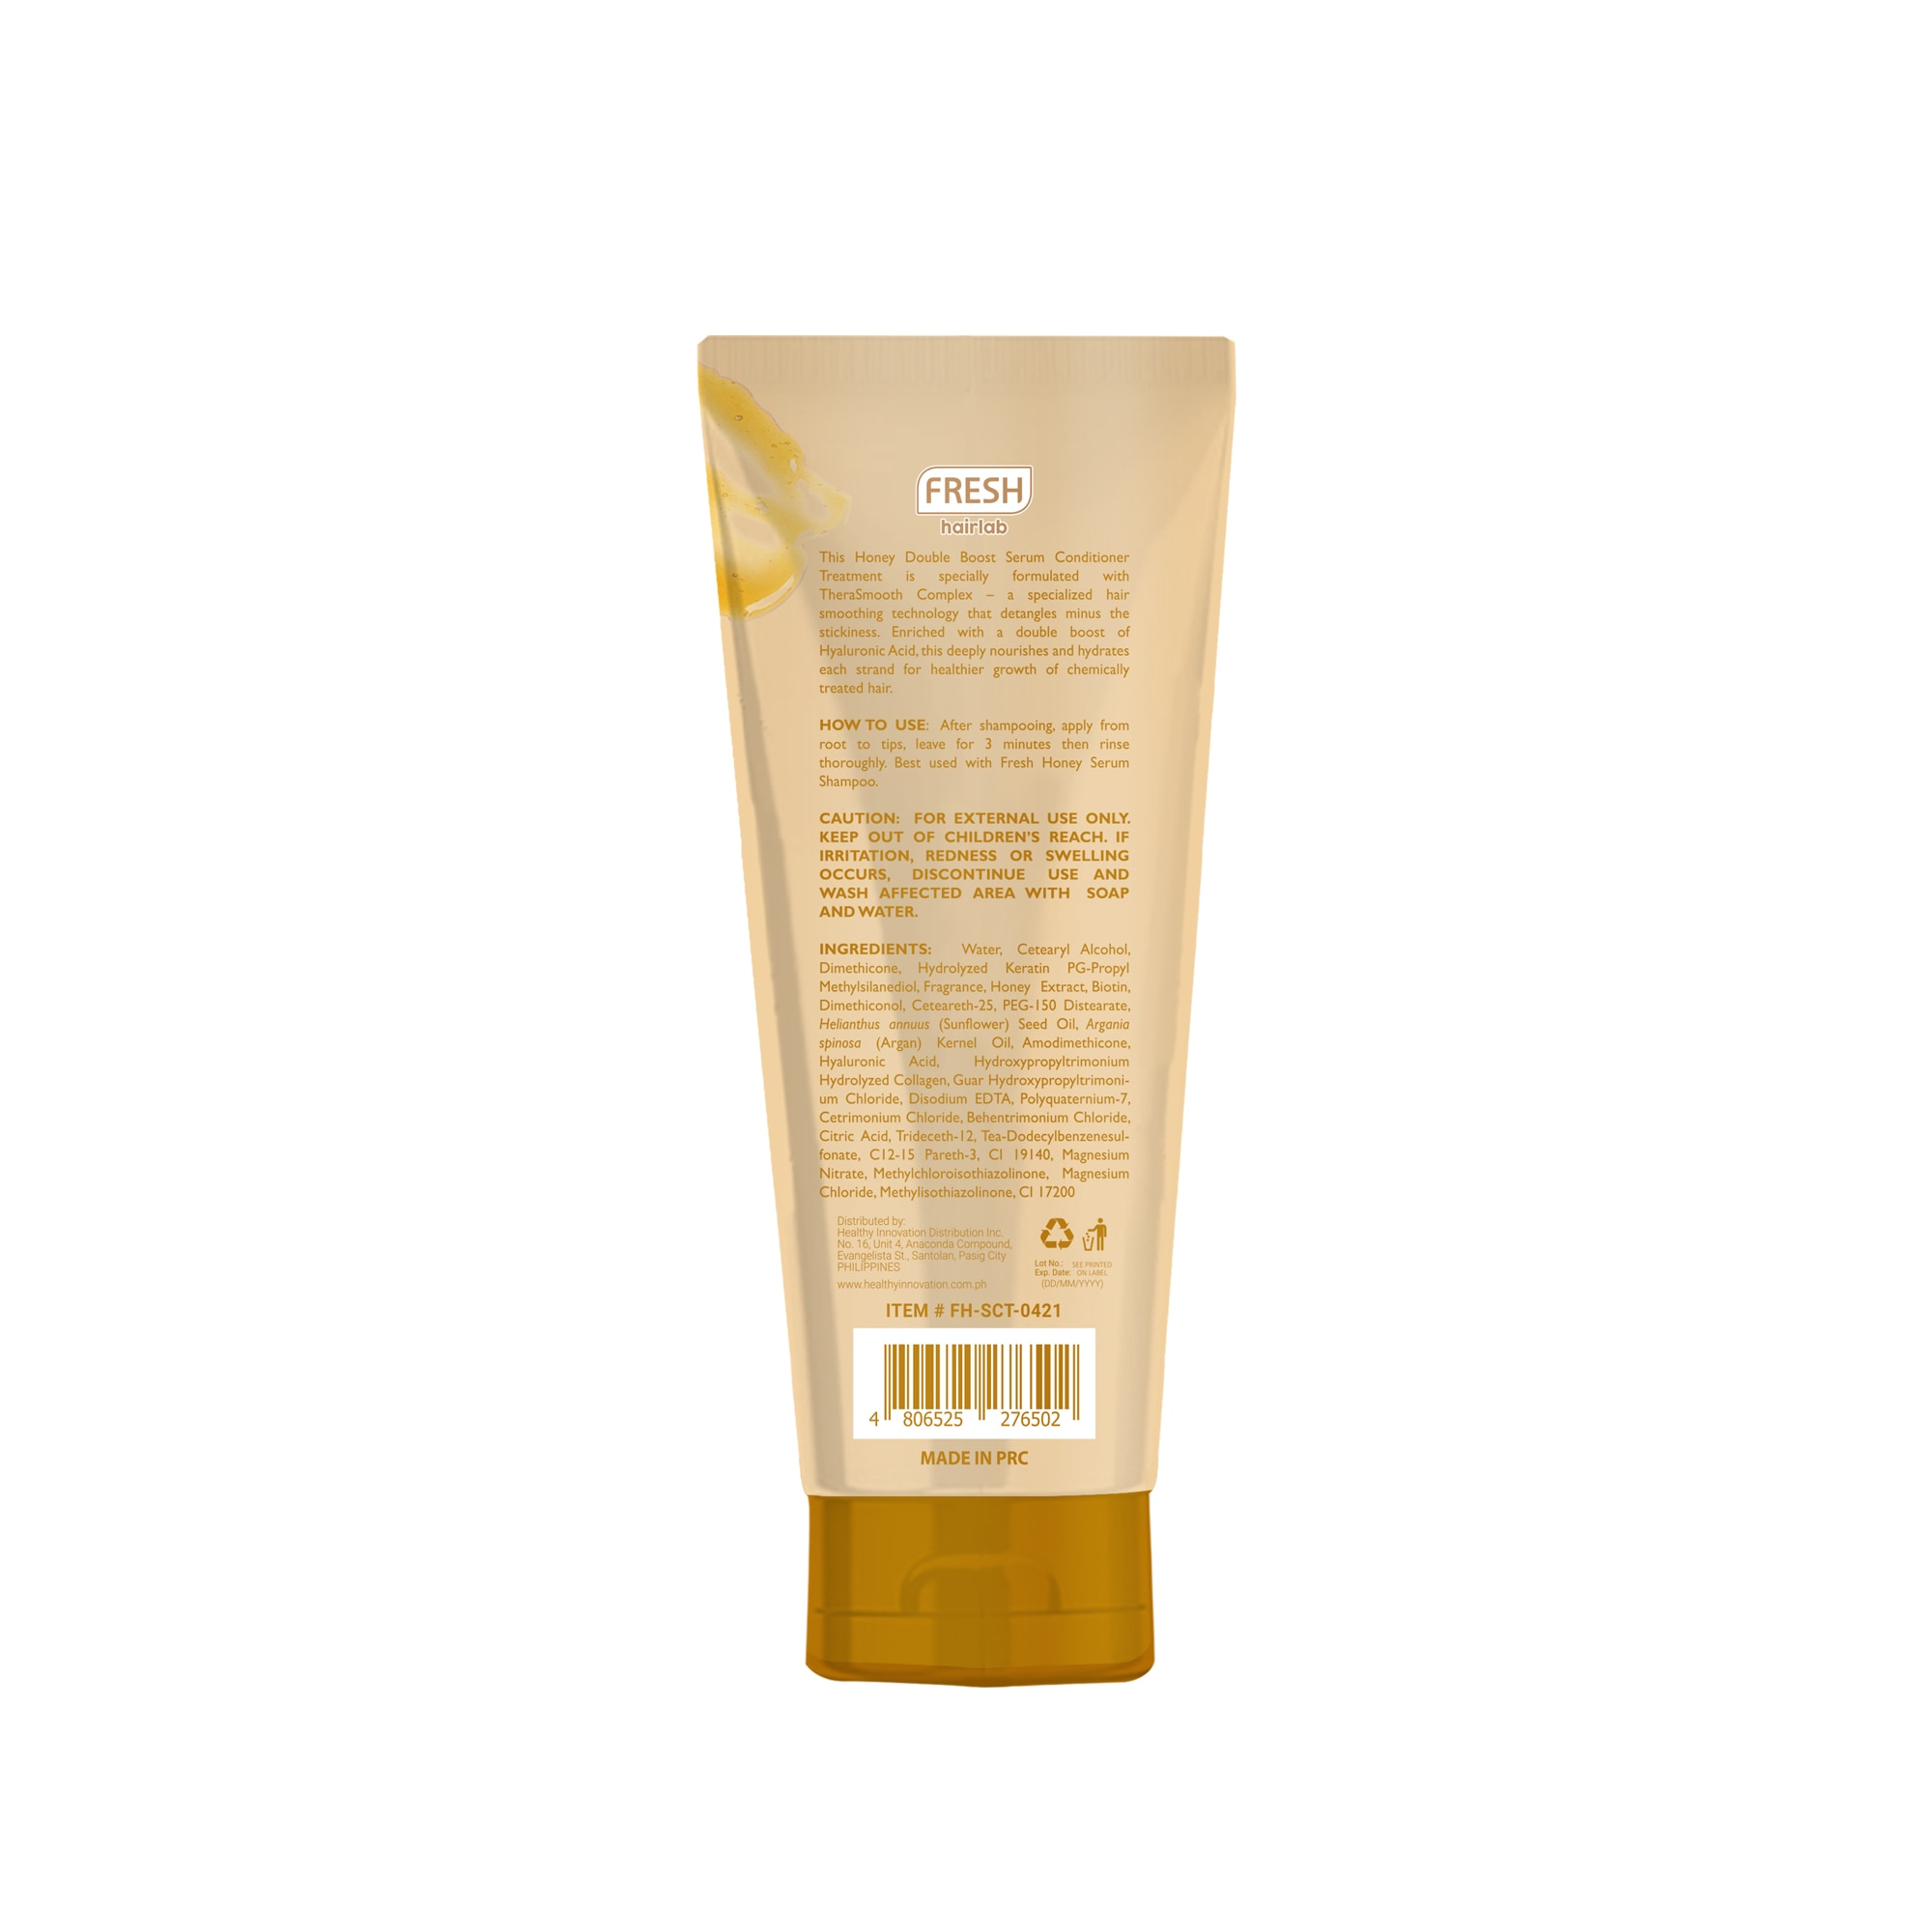 FRESHHairlab Honey Double Boost Hyaluronic Acid 2 in 1 Serum Conditioner Treatment 200ml,Treatment Condtioner-